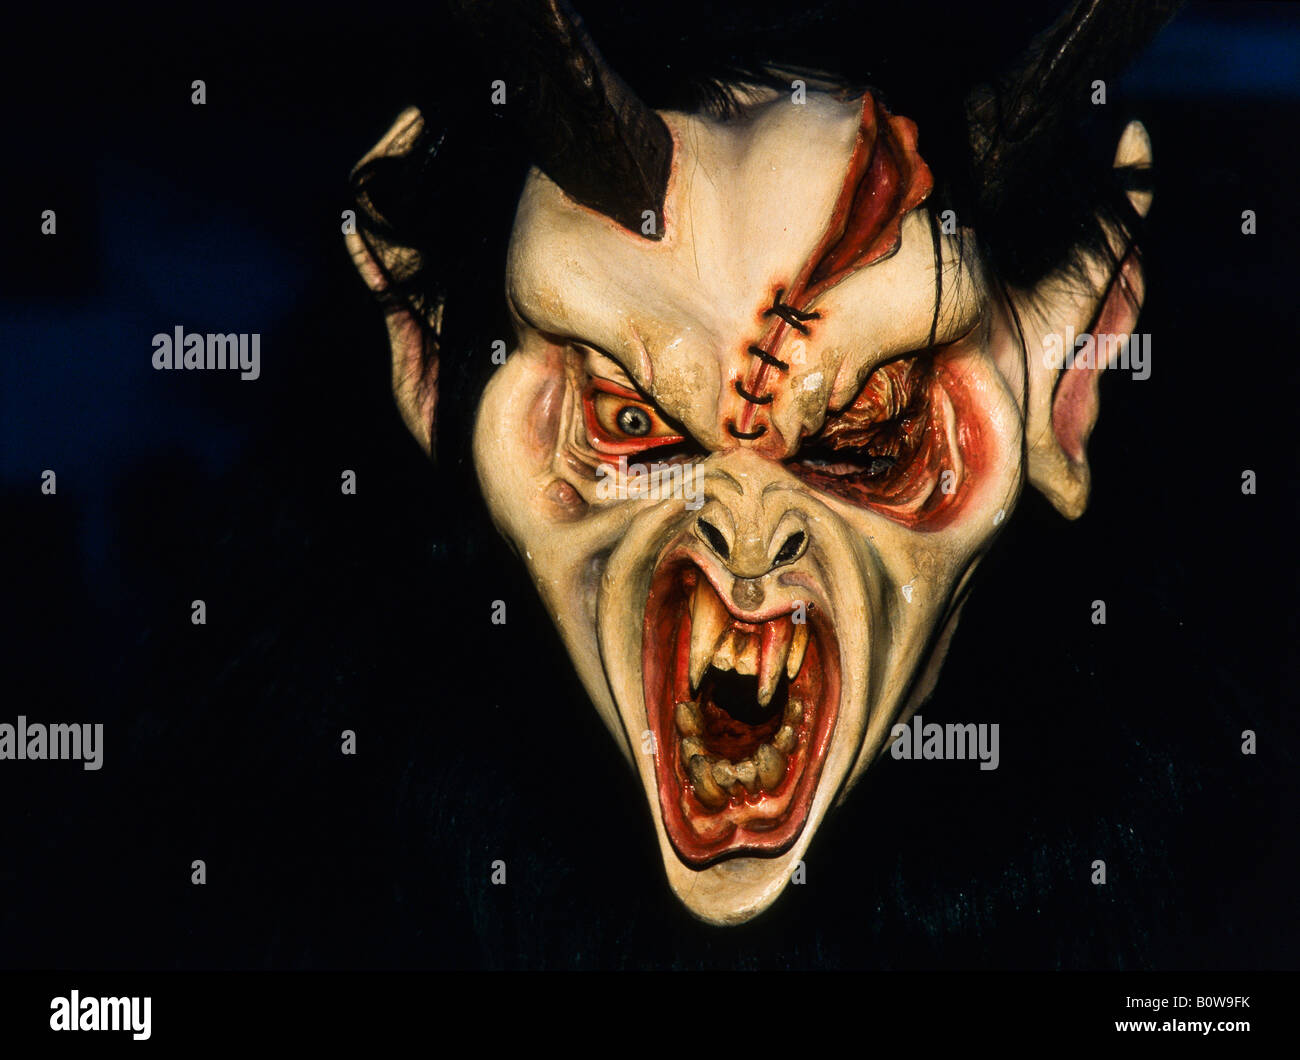 Mask Of The Devil Stock Photos & Mask Of The Devil Stock Images ...